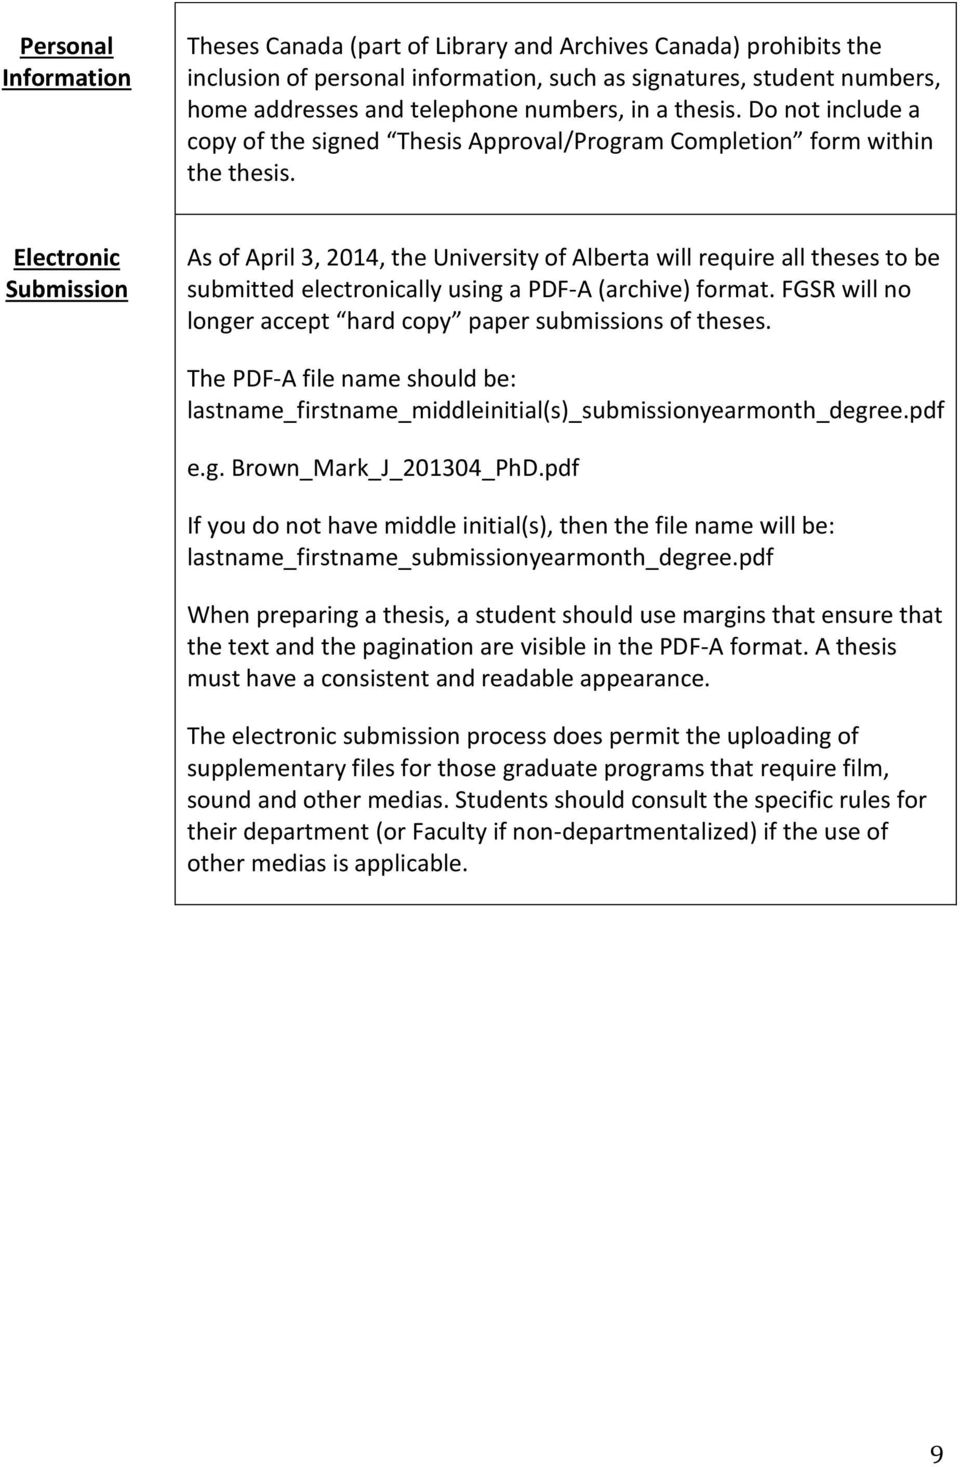 Electronic Submission As of April 3, 2014, the University of Alberta will require all theses to be submitted electronically using a PDF-A (archive) format.